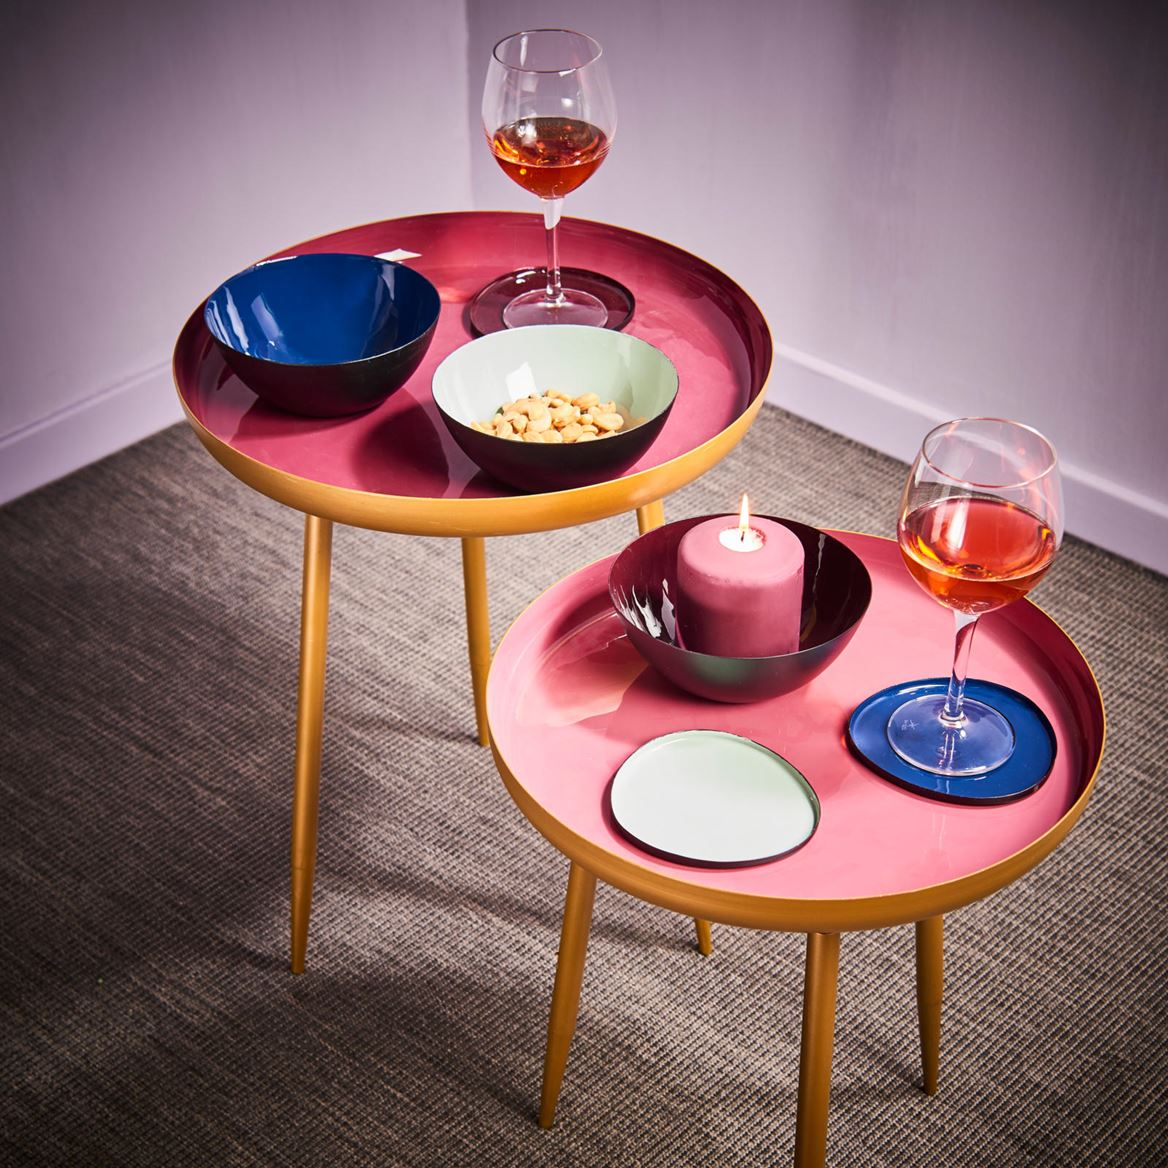 IRENA Table d'appoint_irena-table-d'appoint